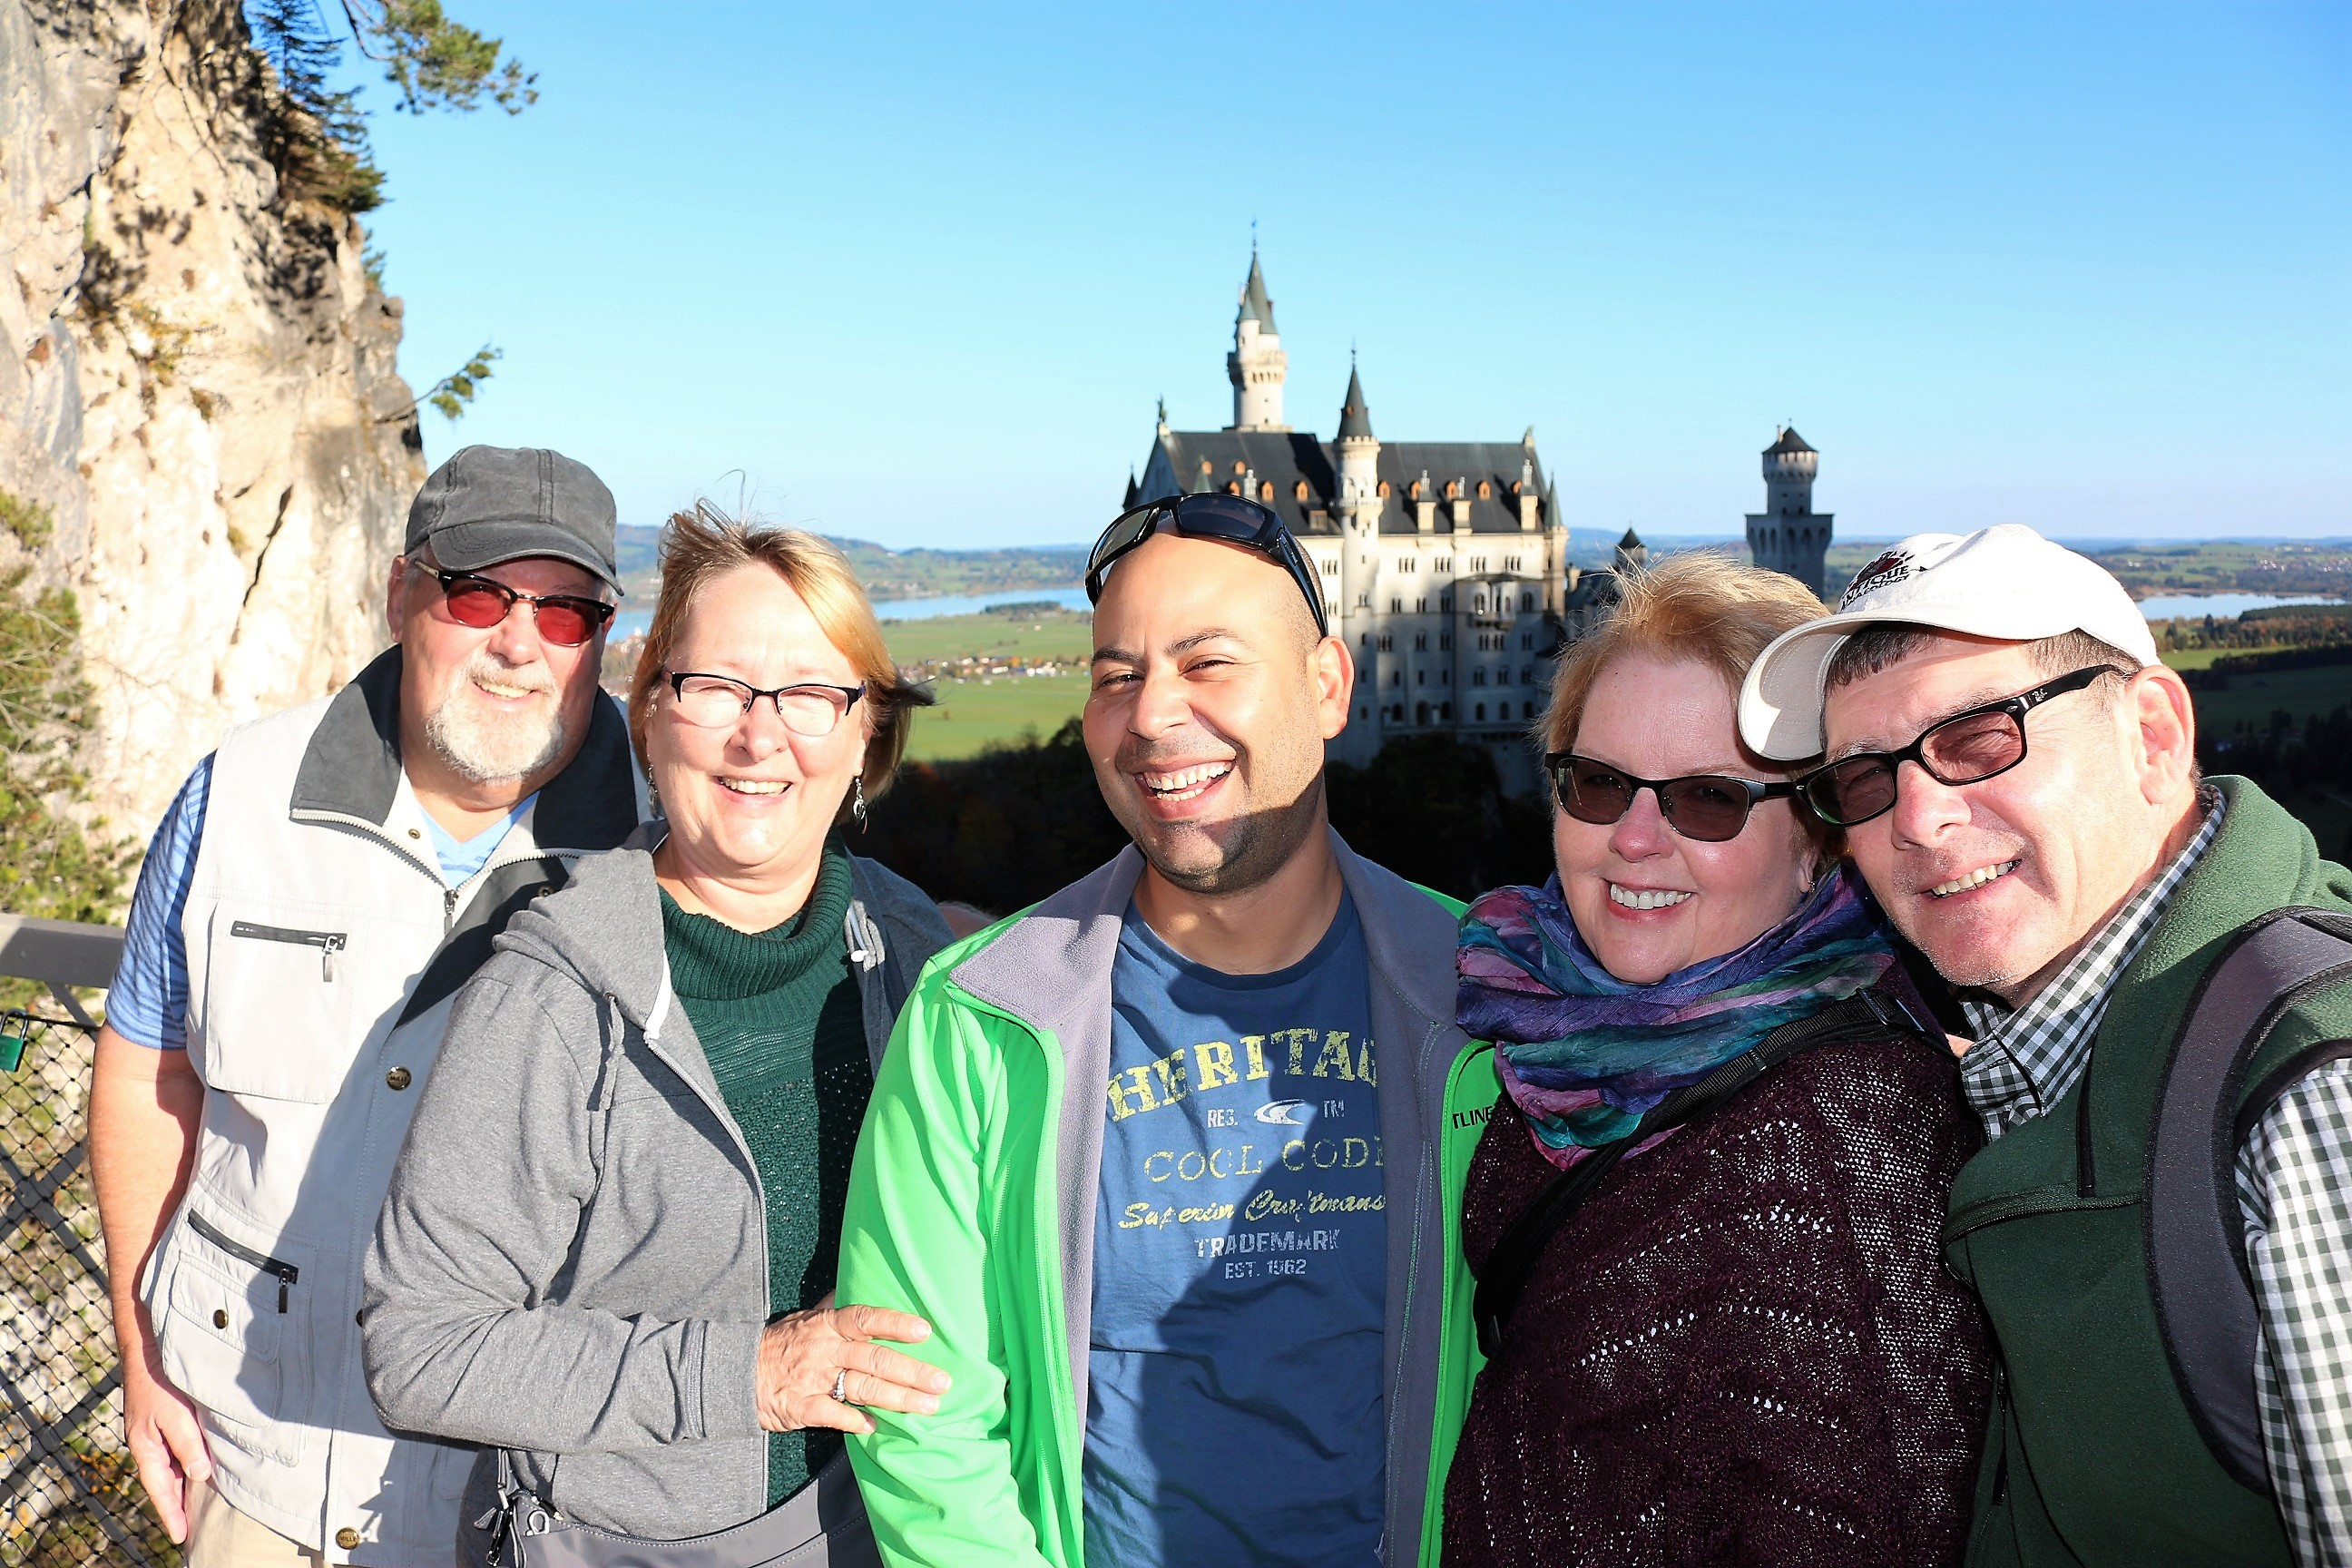 Small Group Tour to Neuschwanstein Castle With Skip The Line Service.